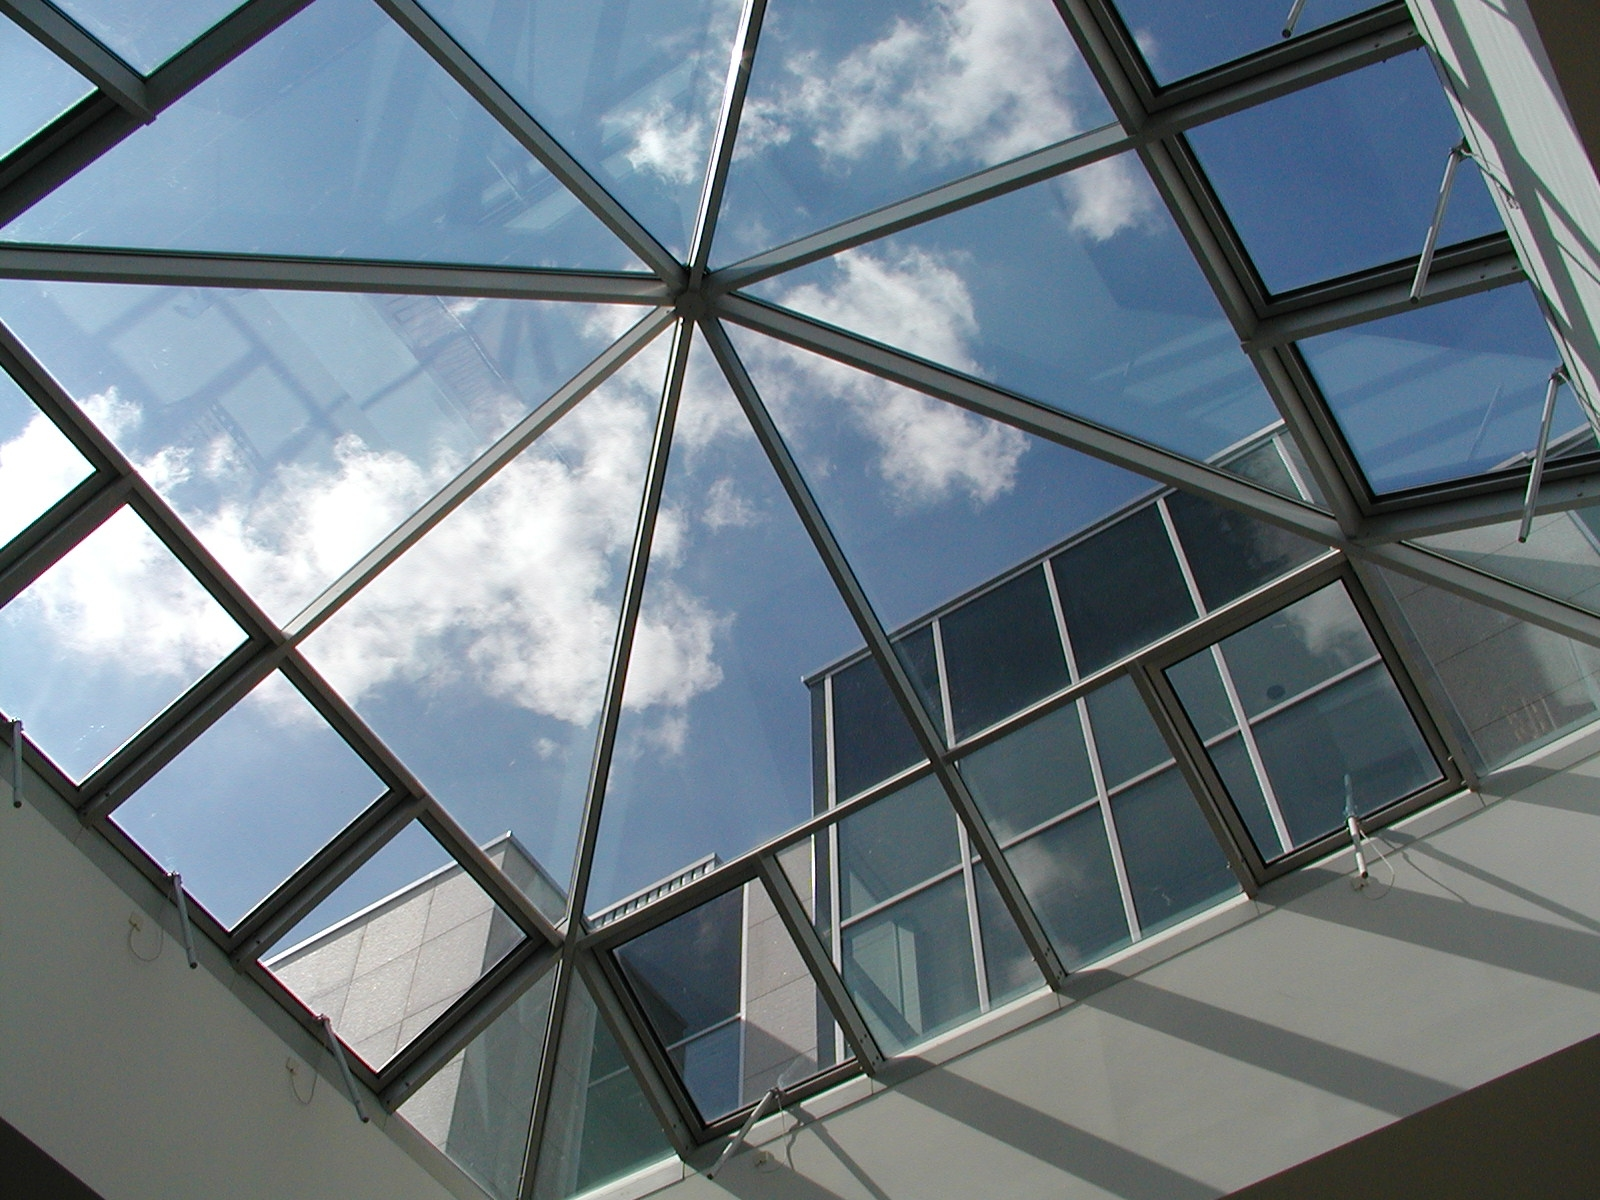 Commercial Building Skylight Design Company Jei Structural Engineering